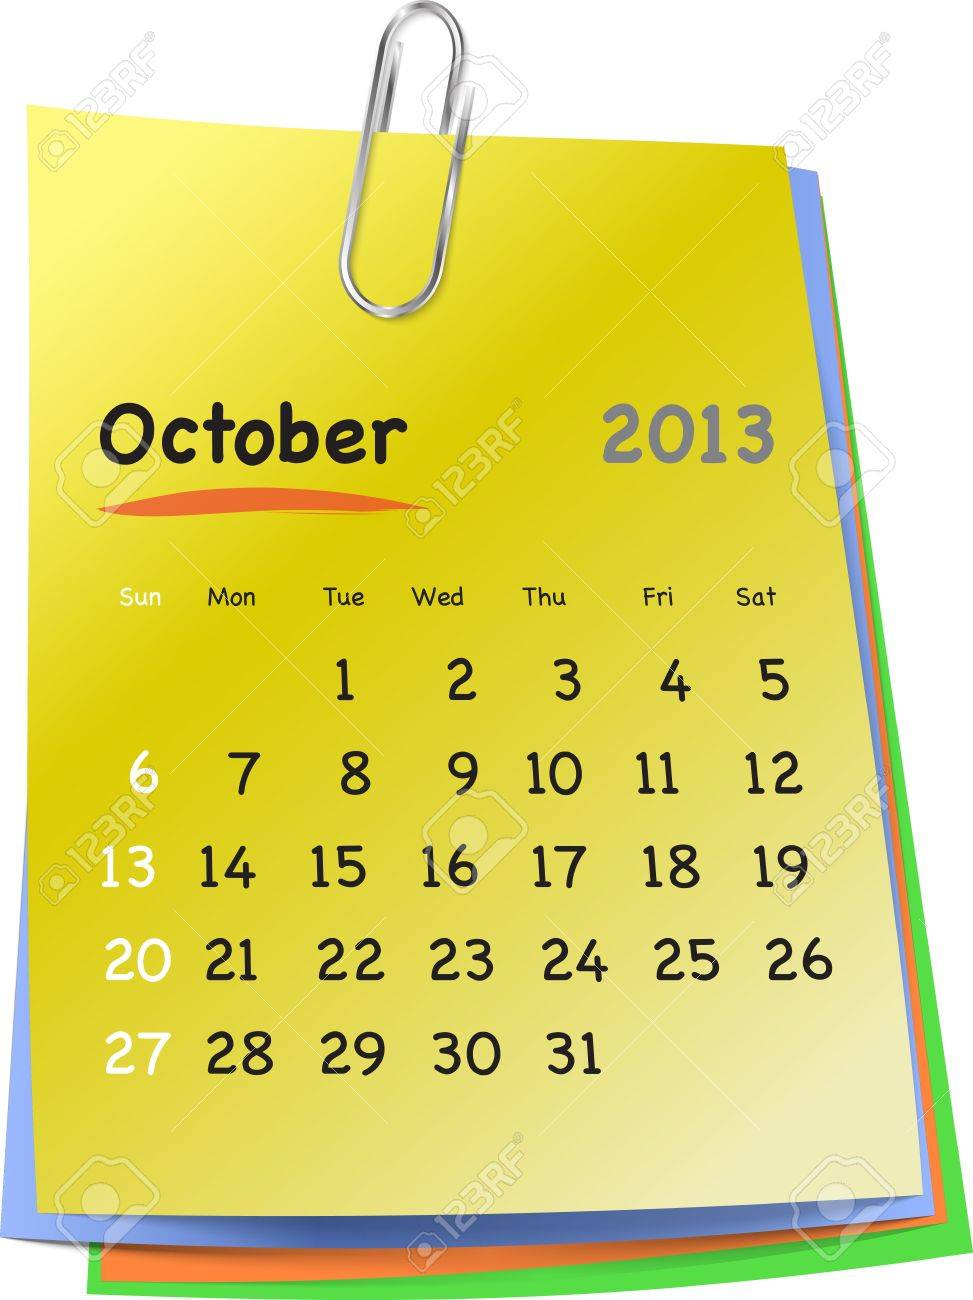 calendar for october 2013 on colorful sticky notes attached with